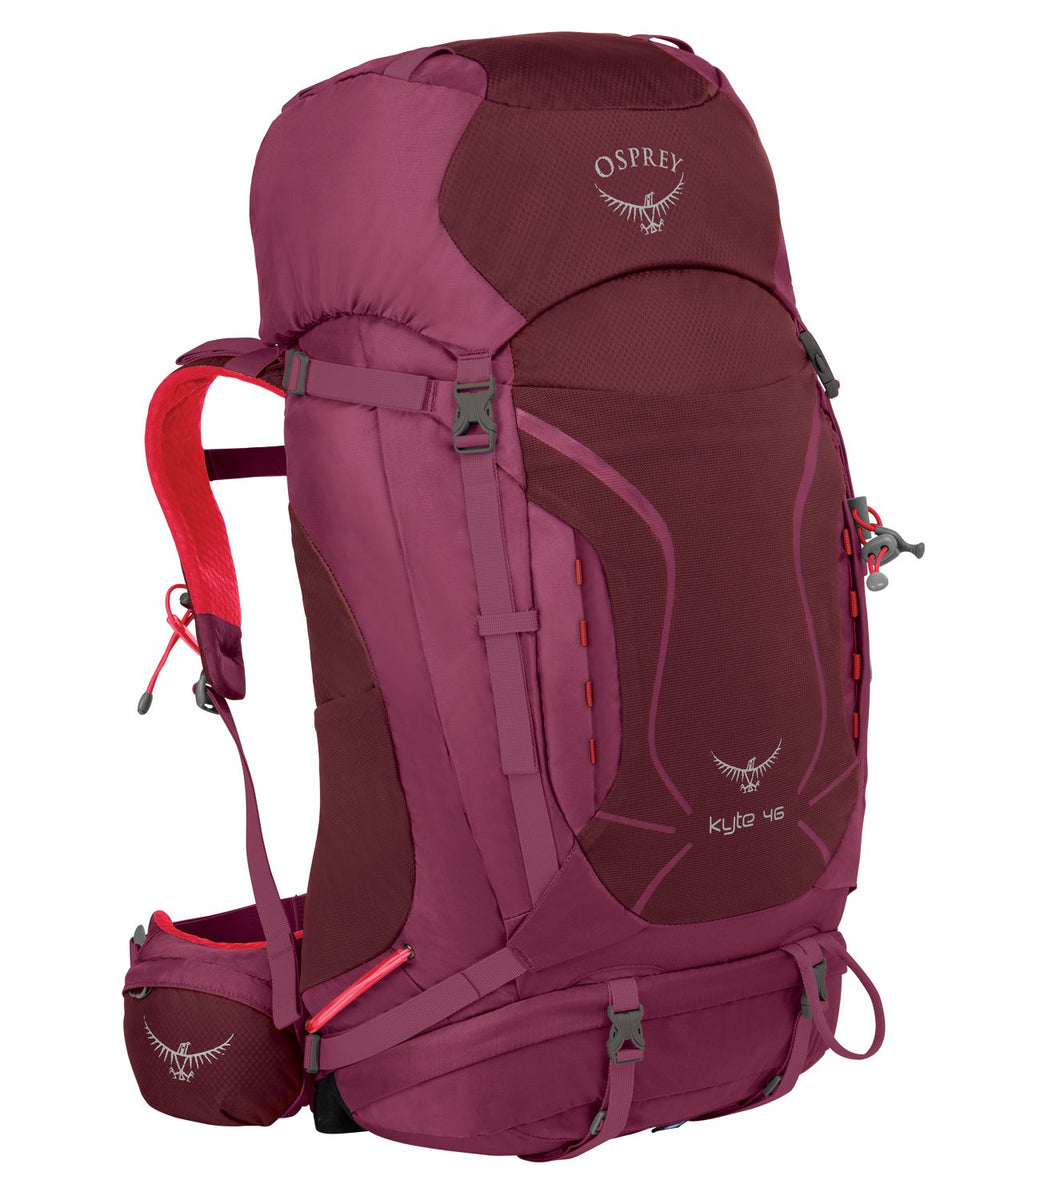 Osprey Packs Women's Kyte 46 Backpack, Purple Calla, Small/Medium